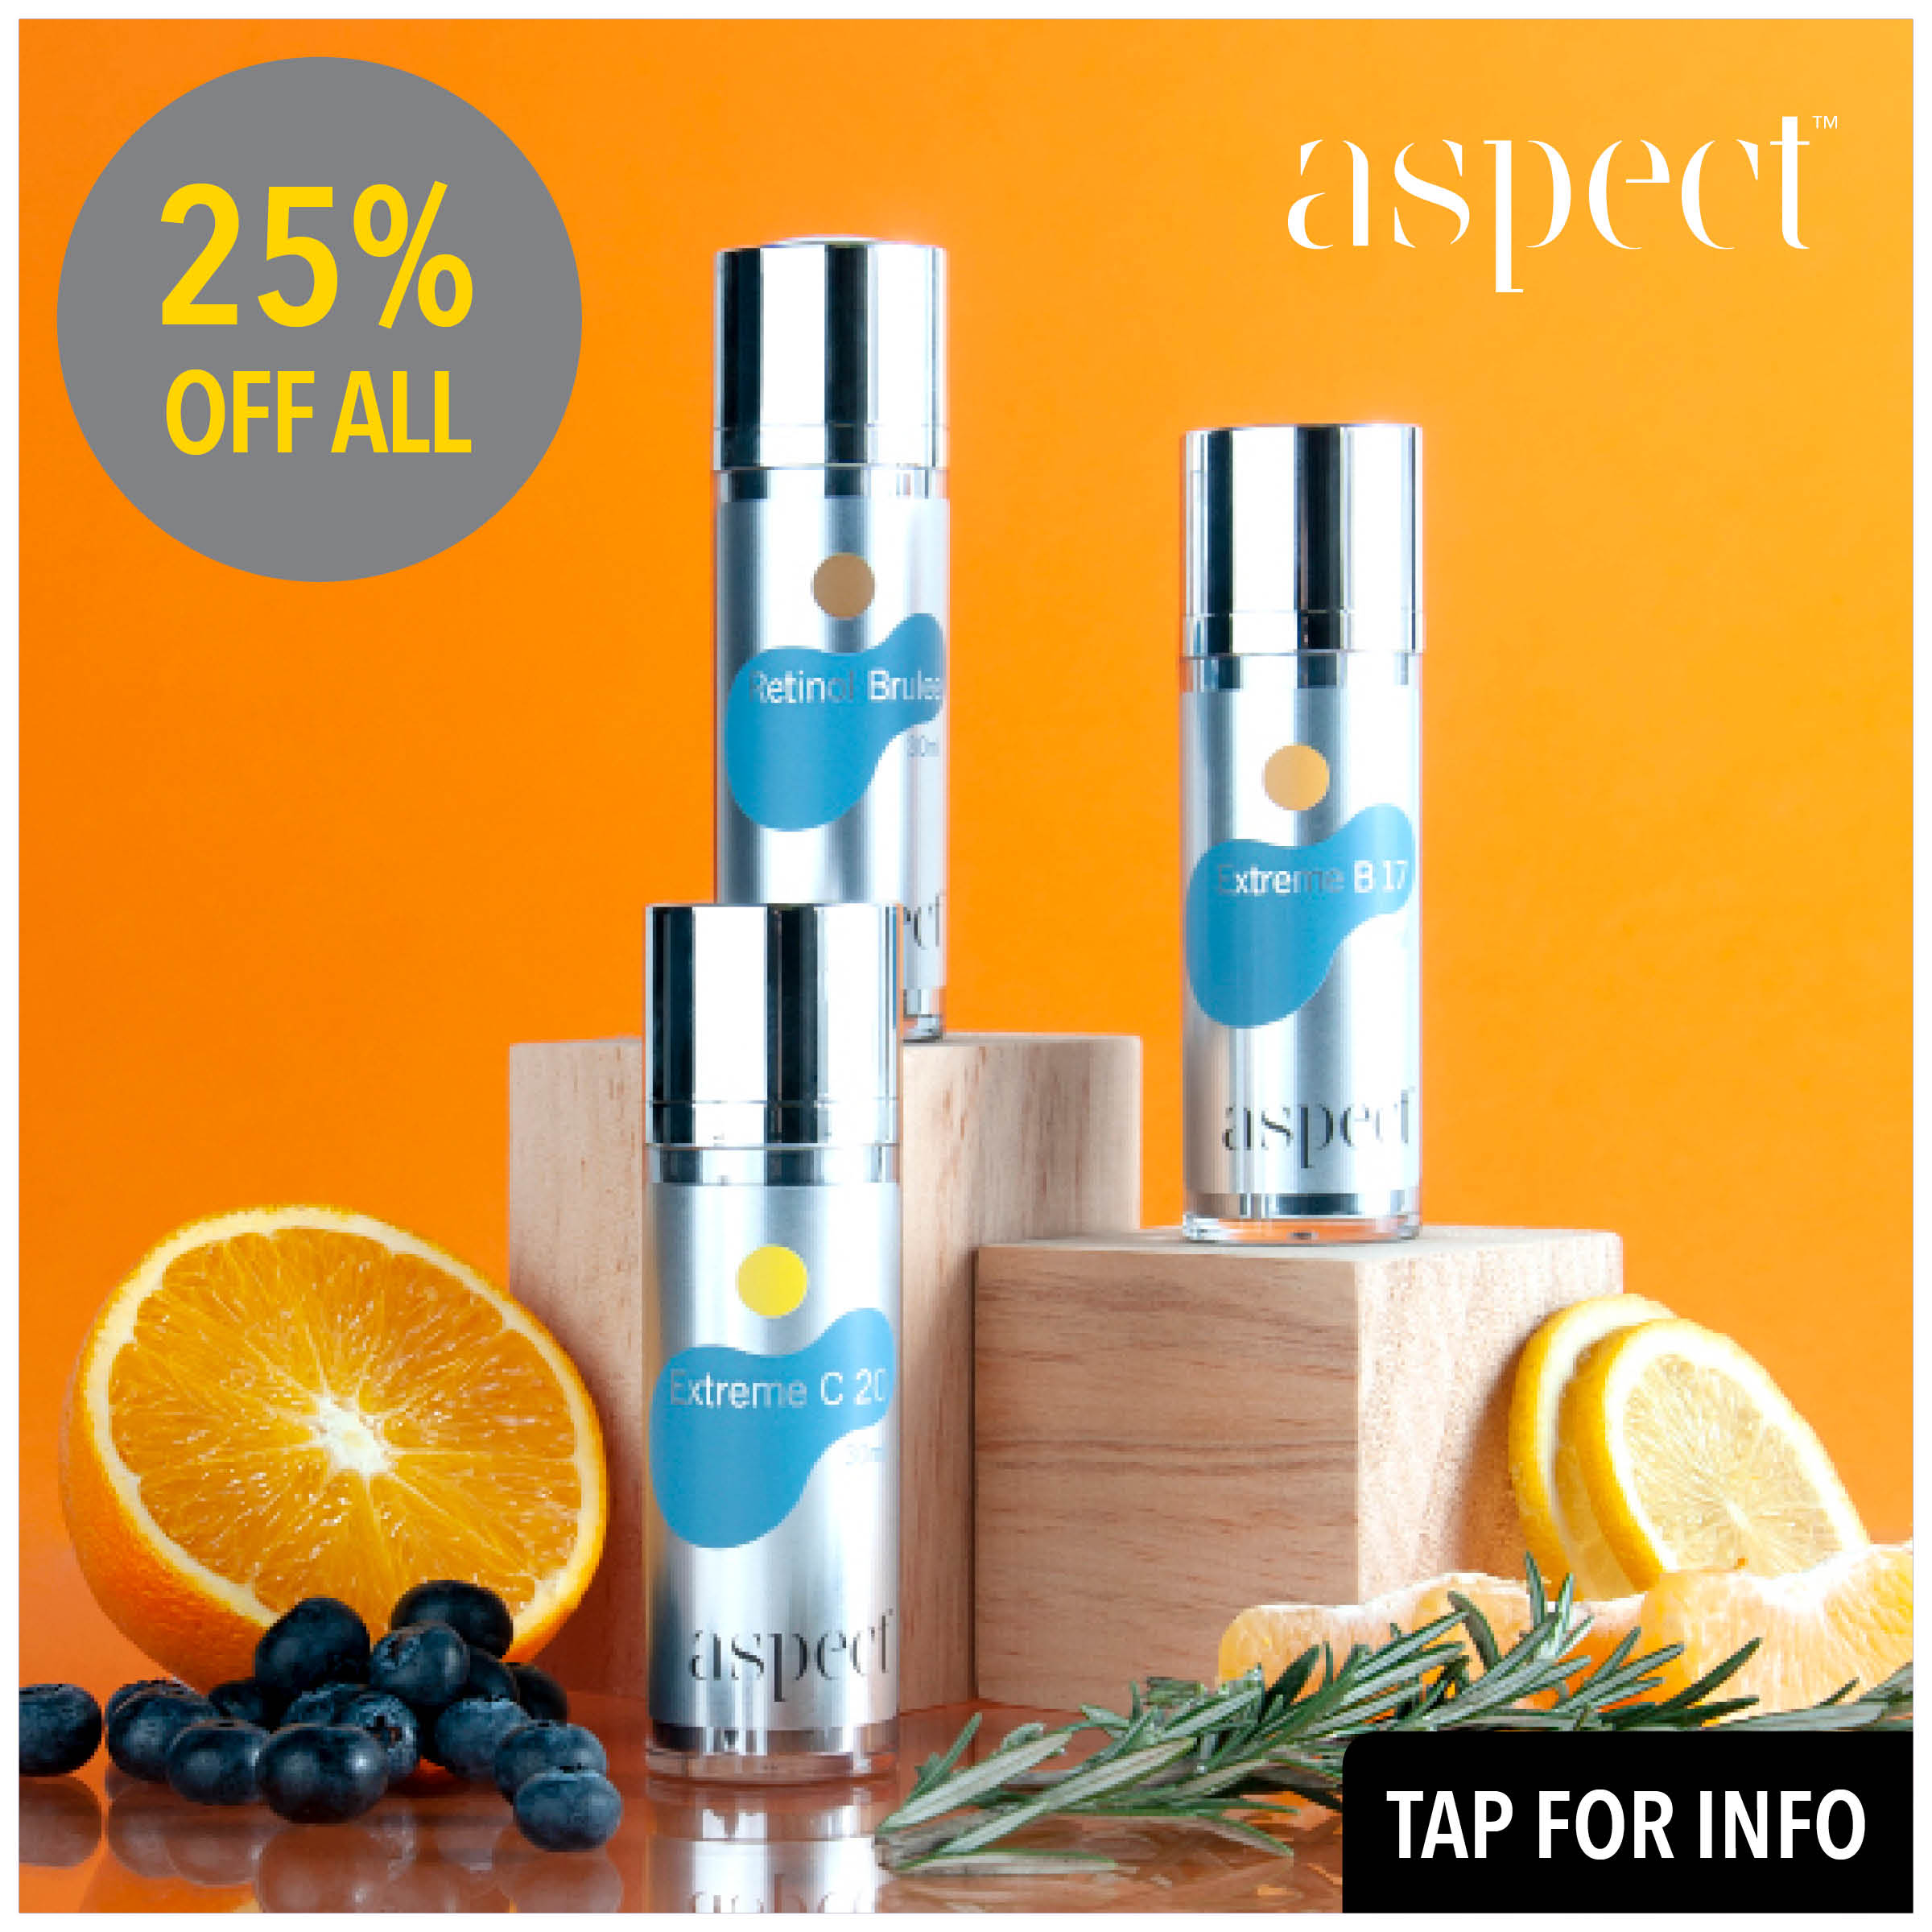 aspect 25% off all